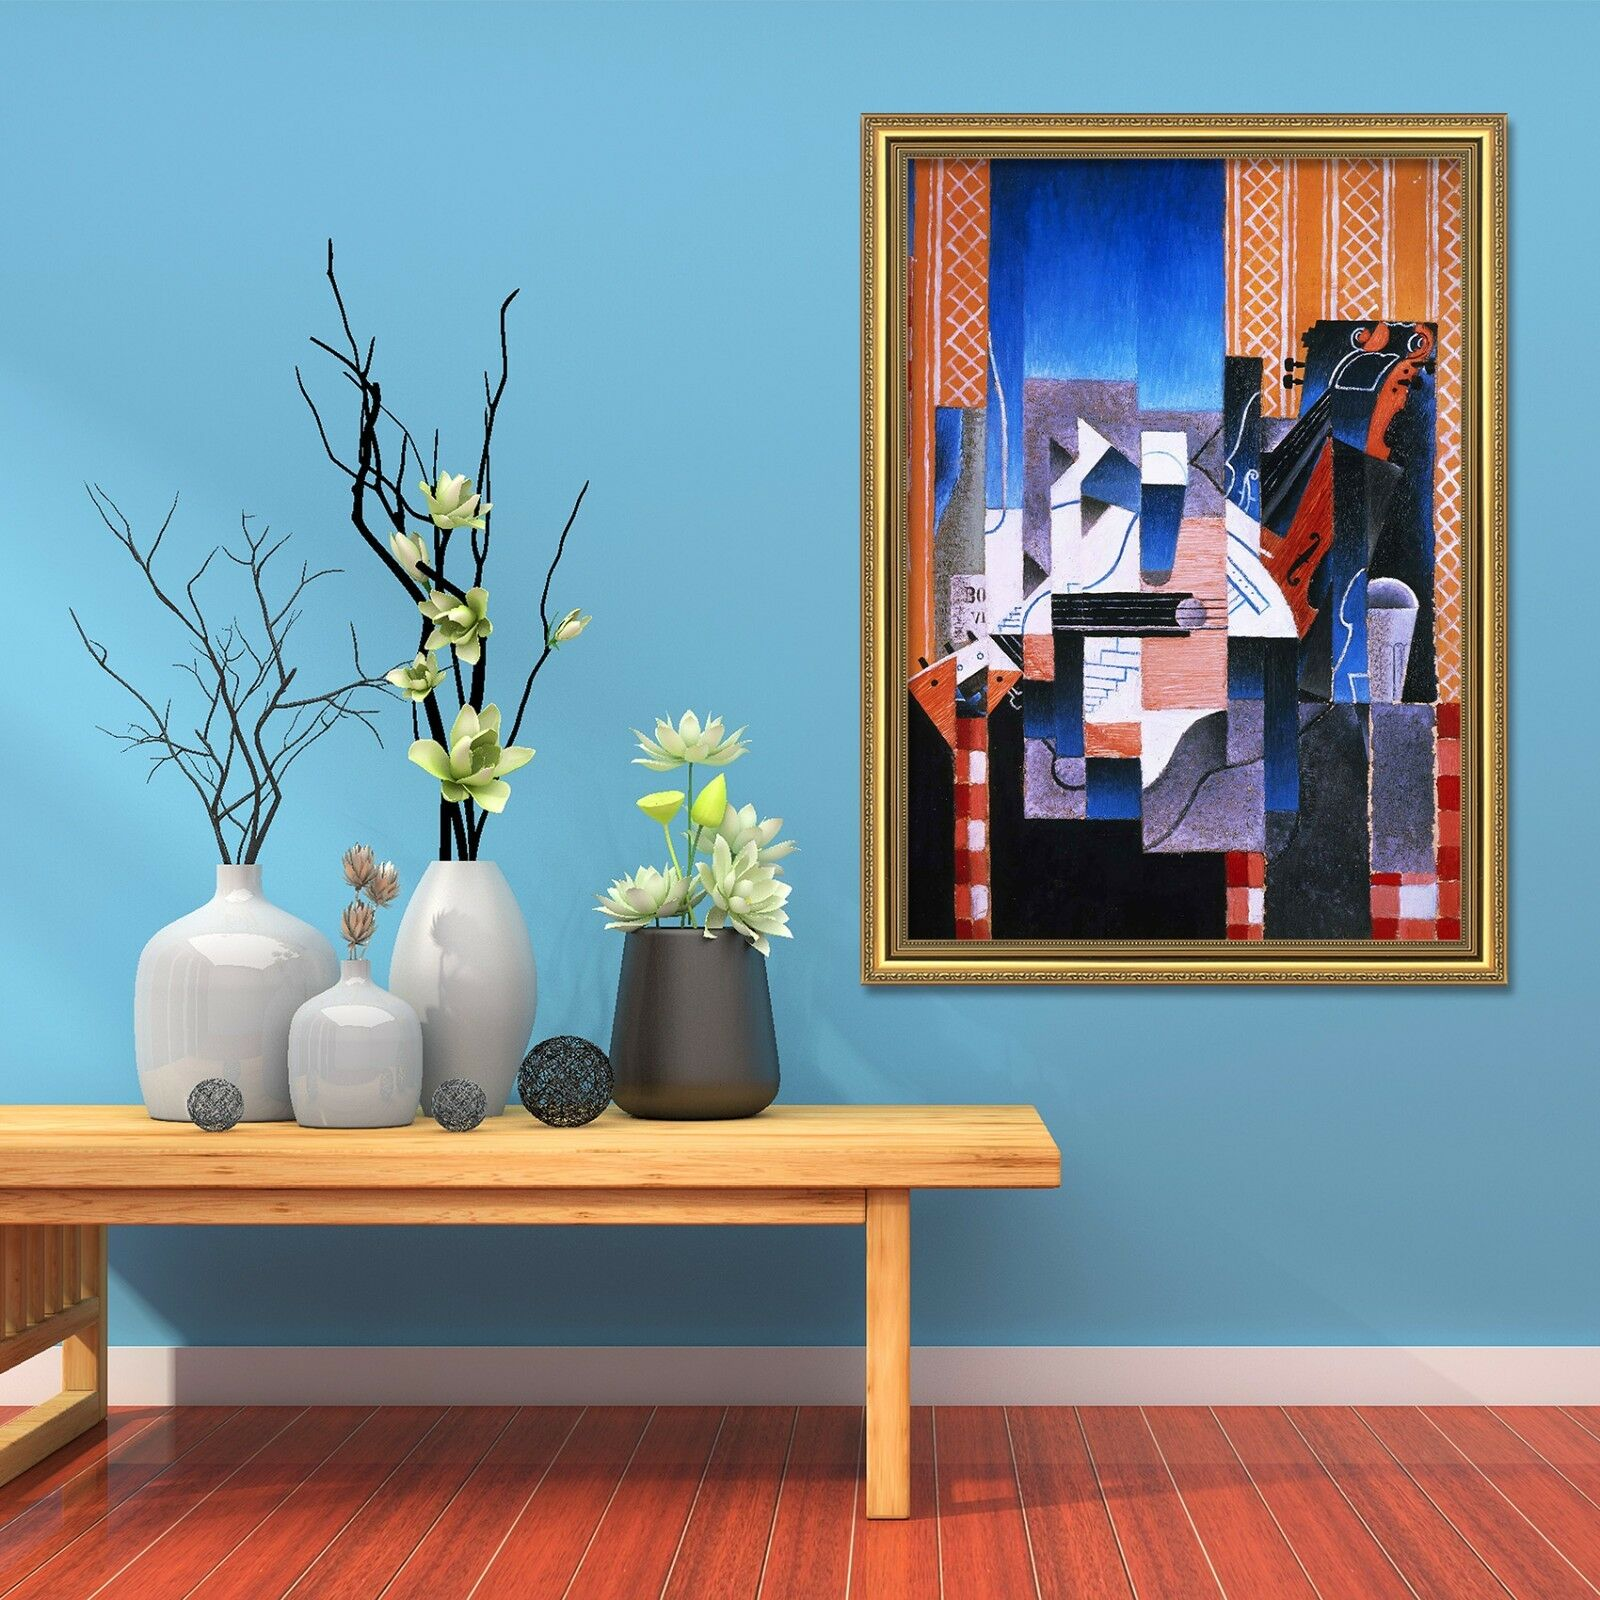 3D Abstract Pattern 8 Framed Poster Home Decor Print Painting Art AJ WALLPAPER